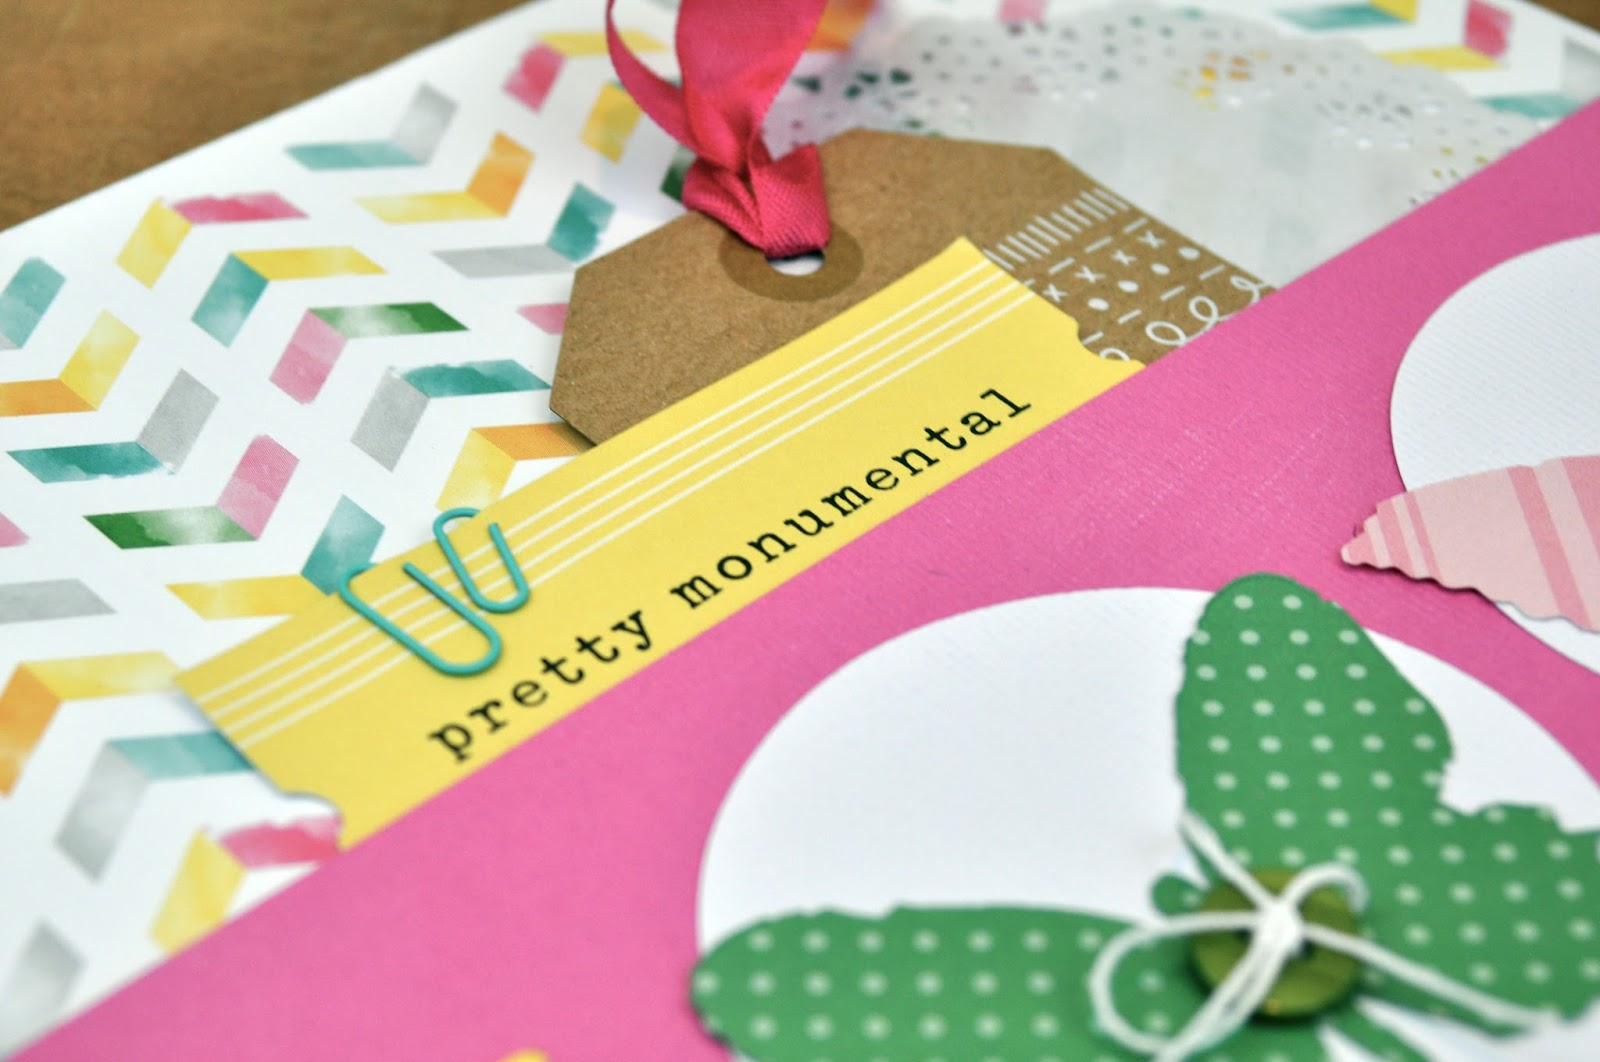 How to make scrapbook for school project - Be Sure To Check Out My Self Paced Workshop Tool School In Which I Share Additional Ideas For Using Die Cuts Punches And More